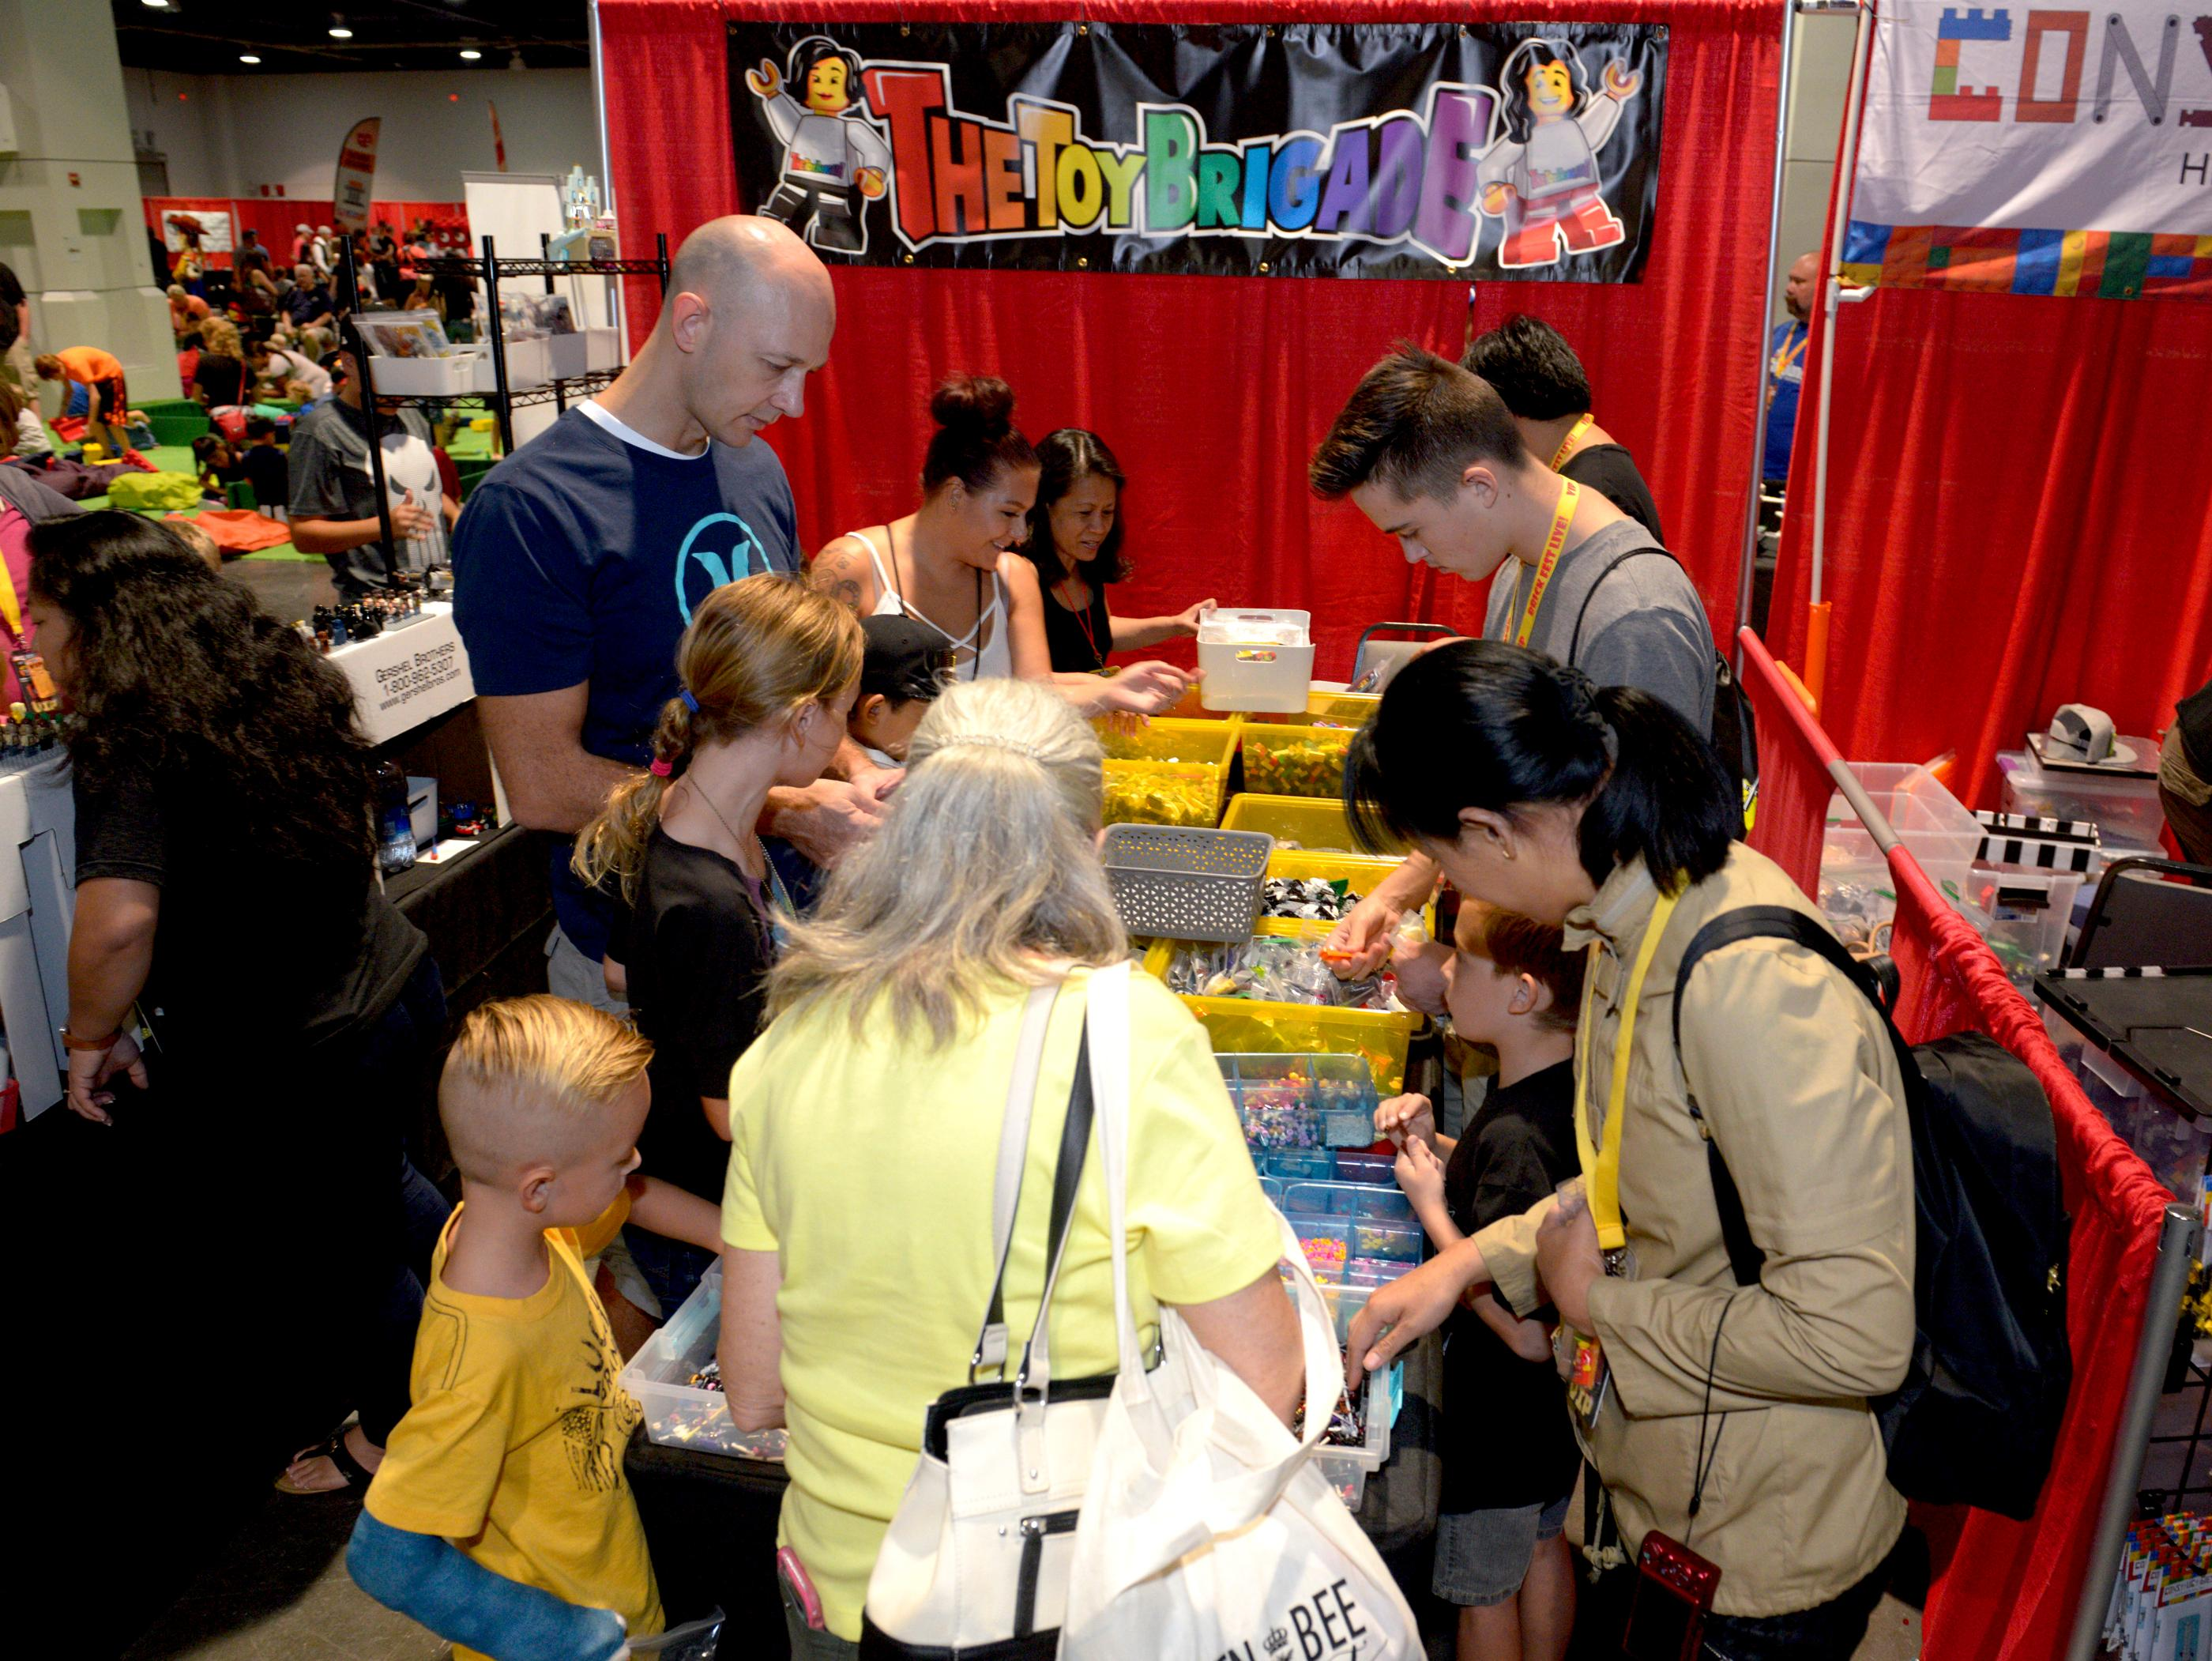 The Brick Fest Live Lego Fan Experience at the Las Vegas Convention Center, September 9, 2017. [Glenn Pinkerton/Las Vegas News Bureau]